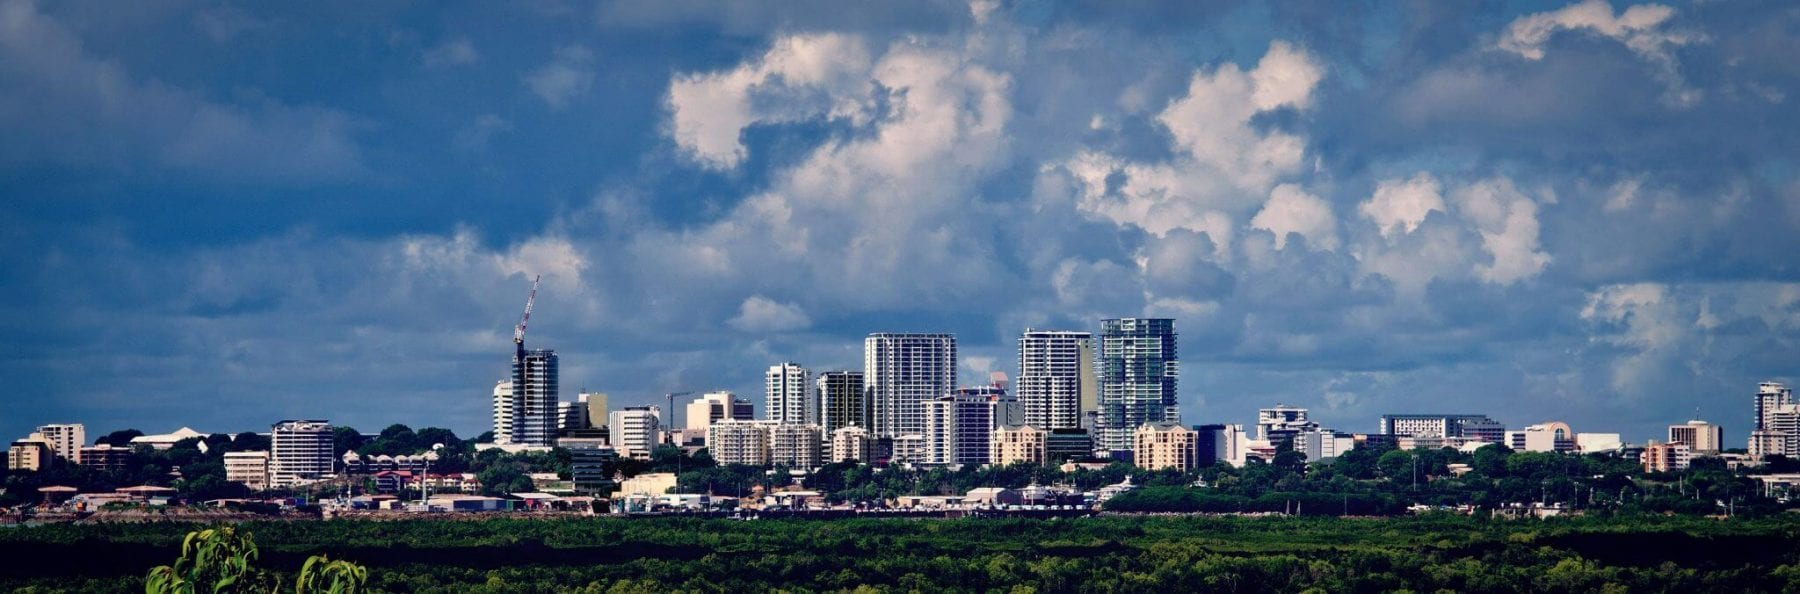 City landscape of Darwin Northern Territory